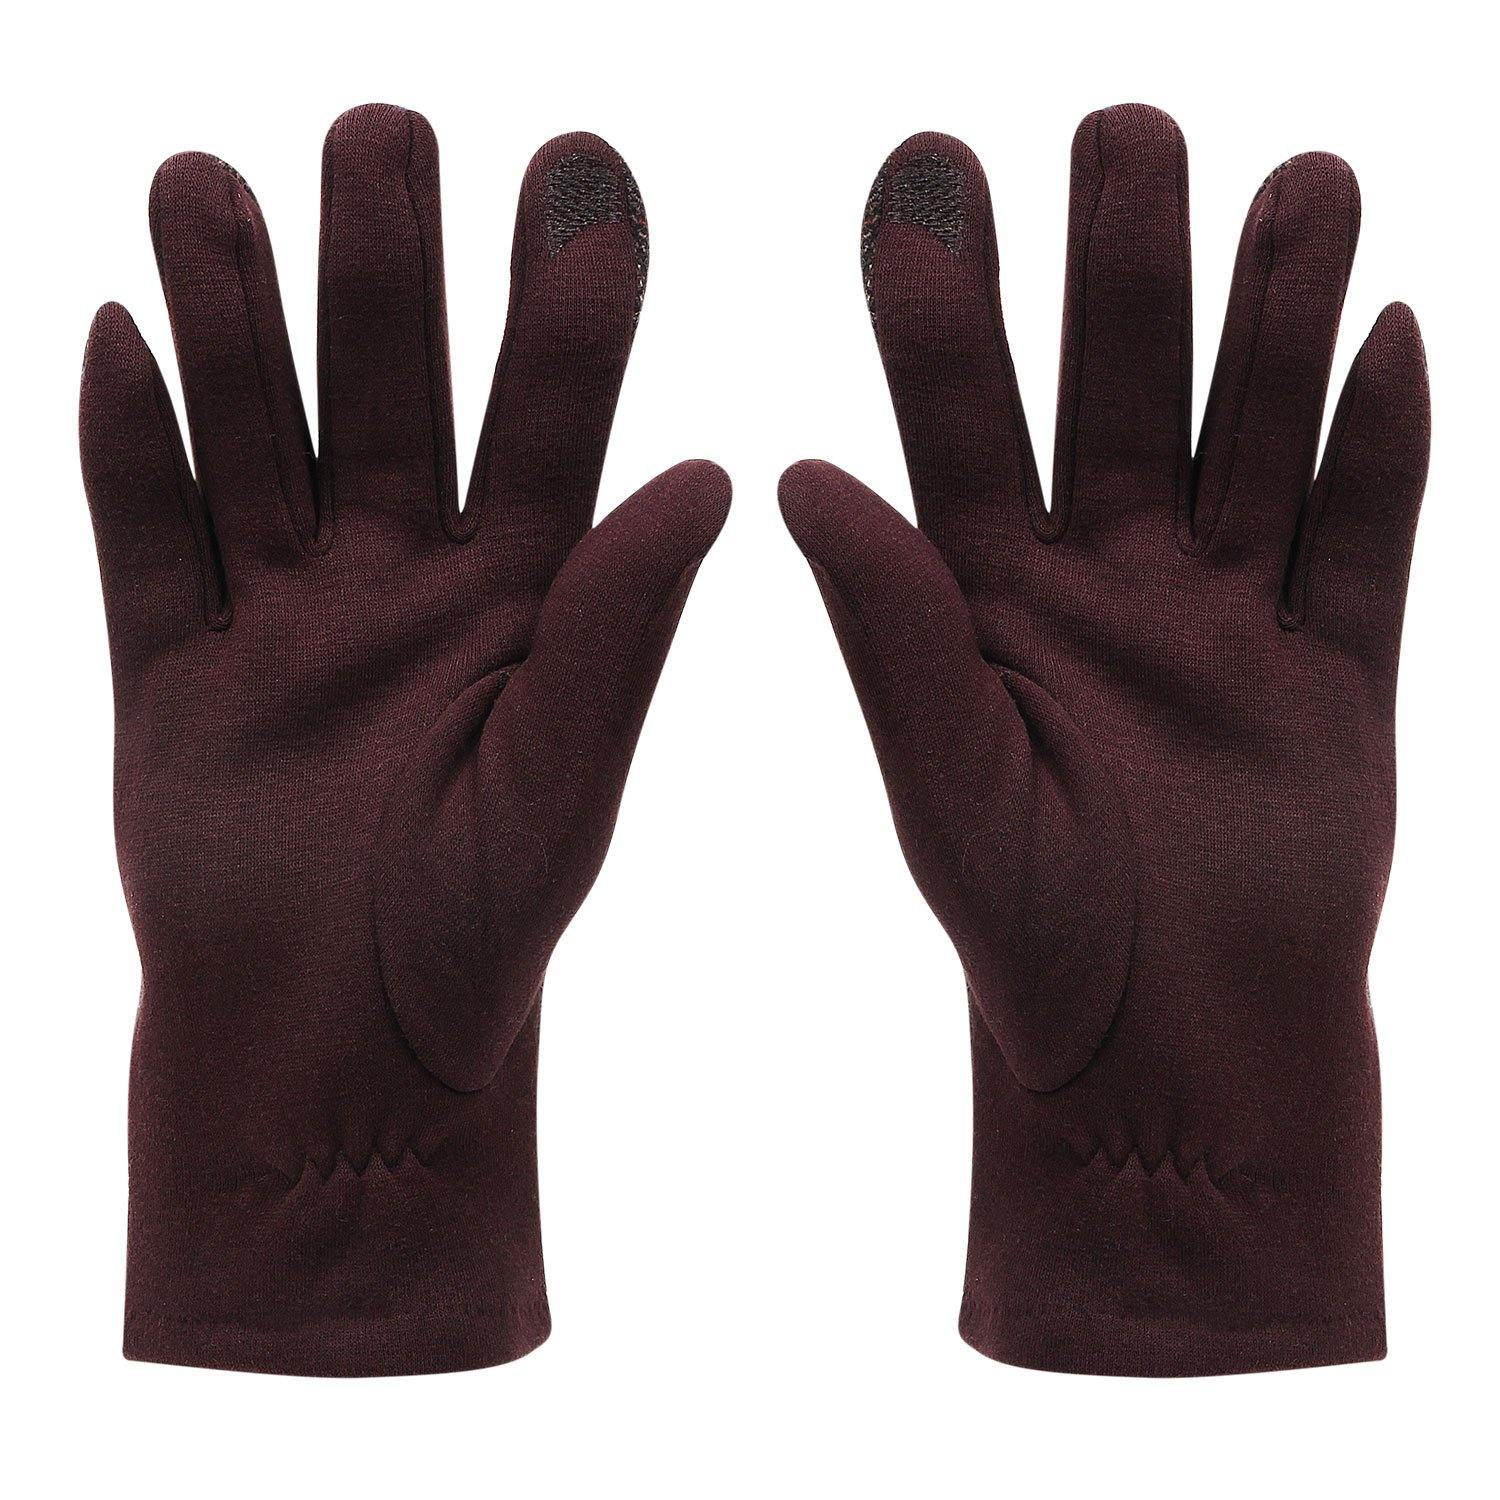 Designer Winter Gloves For Men - Brown